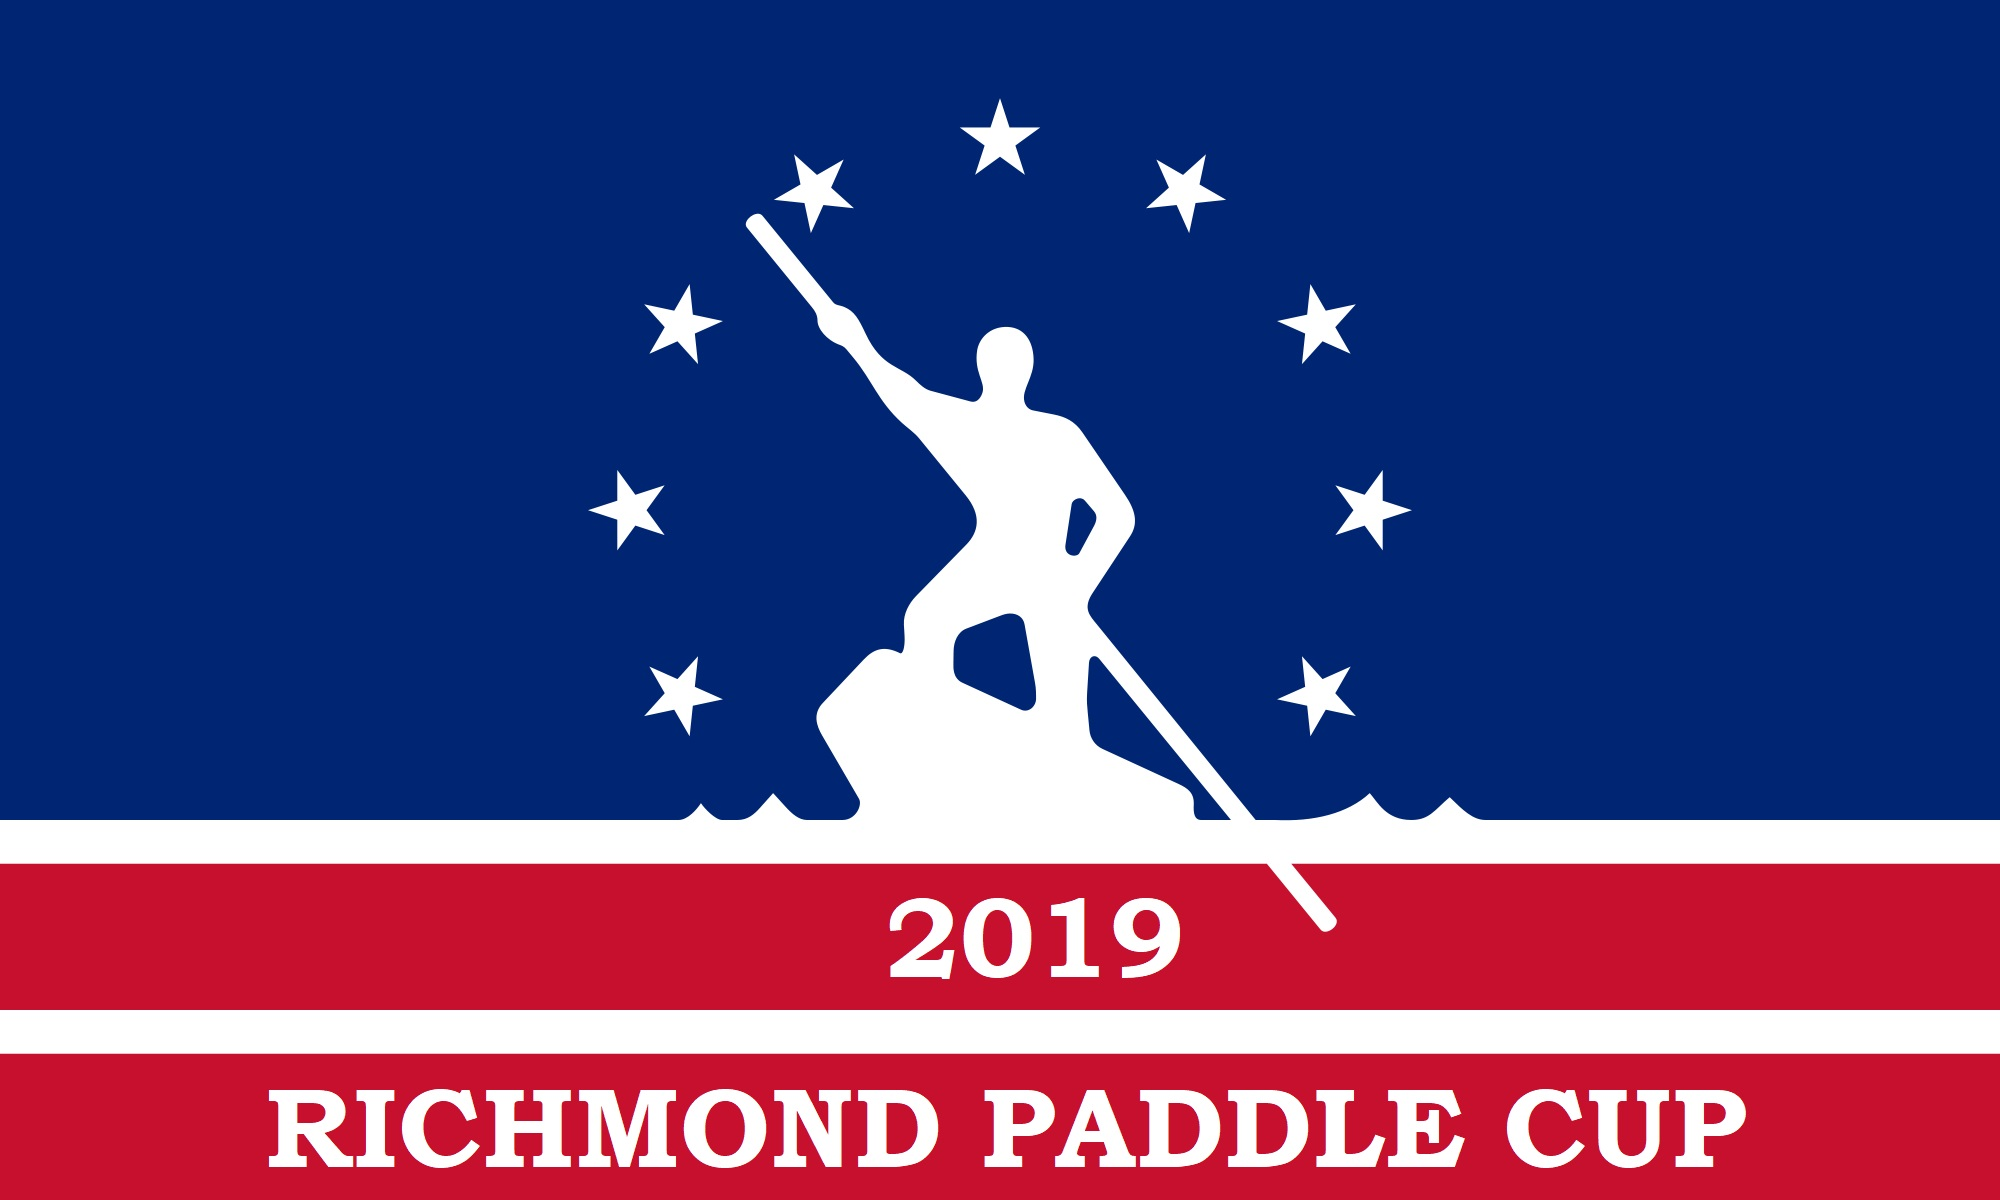 2019 Richmond Paddle Cup